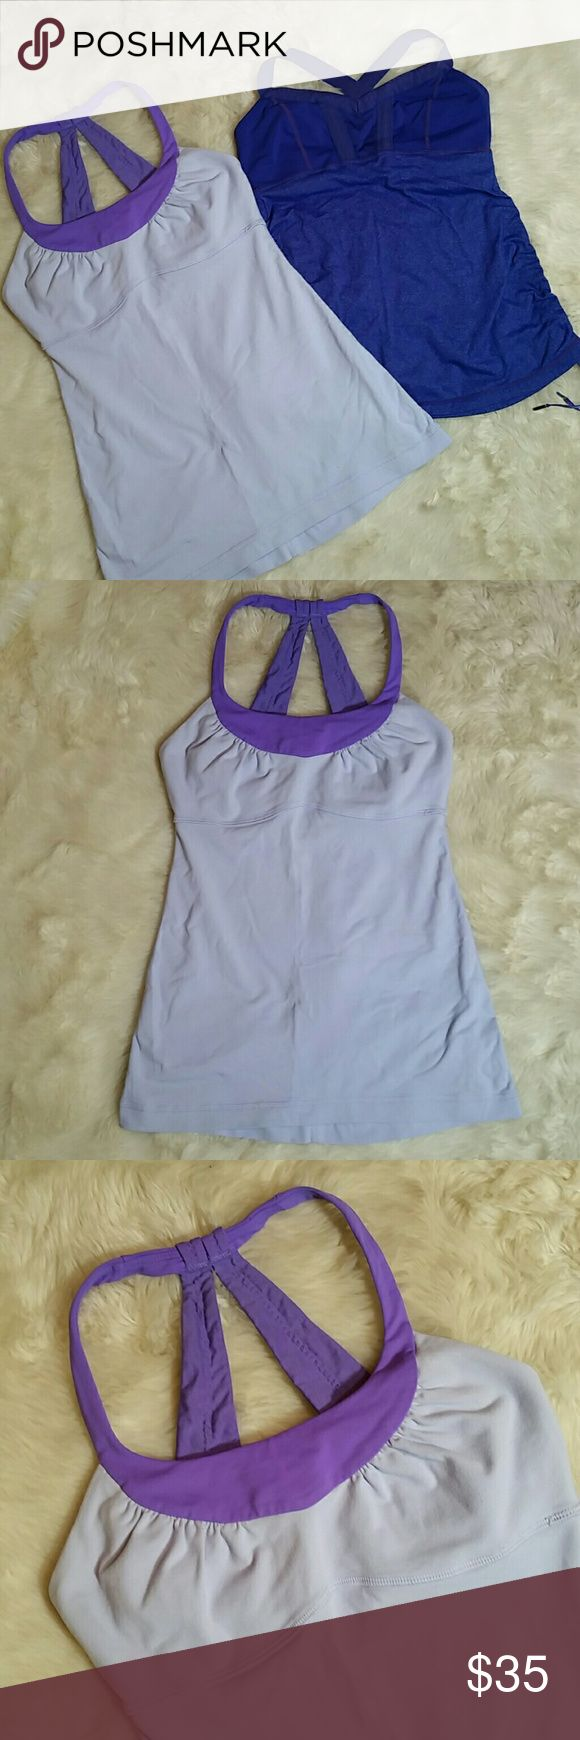 """Lululemon Bundle of Two Purple Tops Lululemon Bundle of Two Purple Tops. Two tops. The first one is Lavendar and no size dot located, measuring up to a size 4. Good preowned condition.  No rips, holes, tears or stains. The second top is violet, size dot 4. Missing the little lace caps on the left side bottom, strap has a little snip in it.   Lavendar Pit to Pit 13.5"""" Violet Pit to Pit 13.5"""" lululemon athletica Tops Tank Tops"""